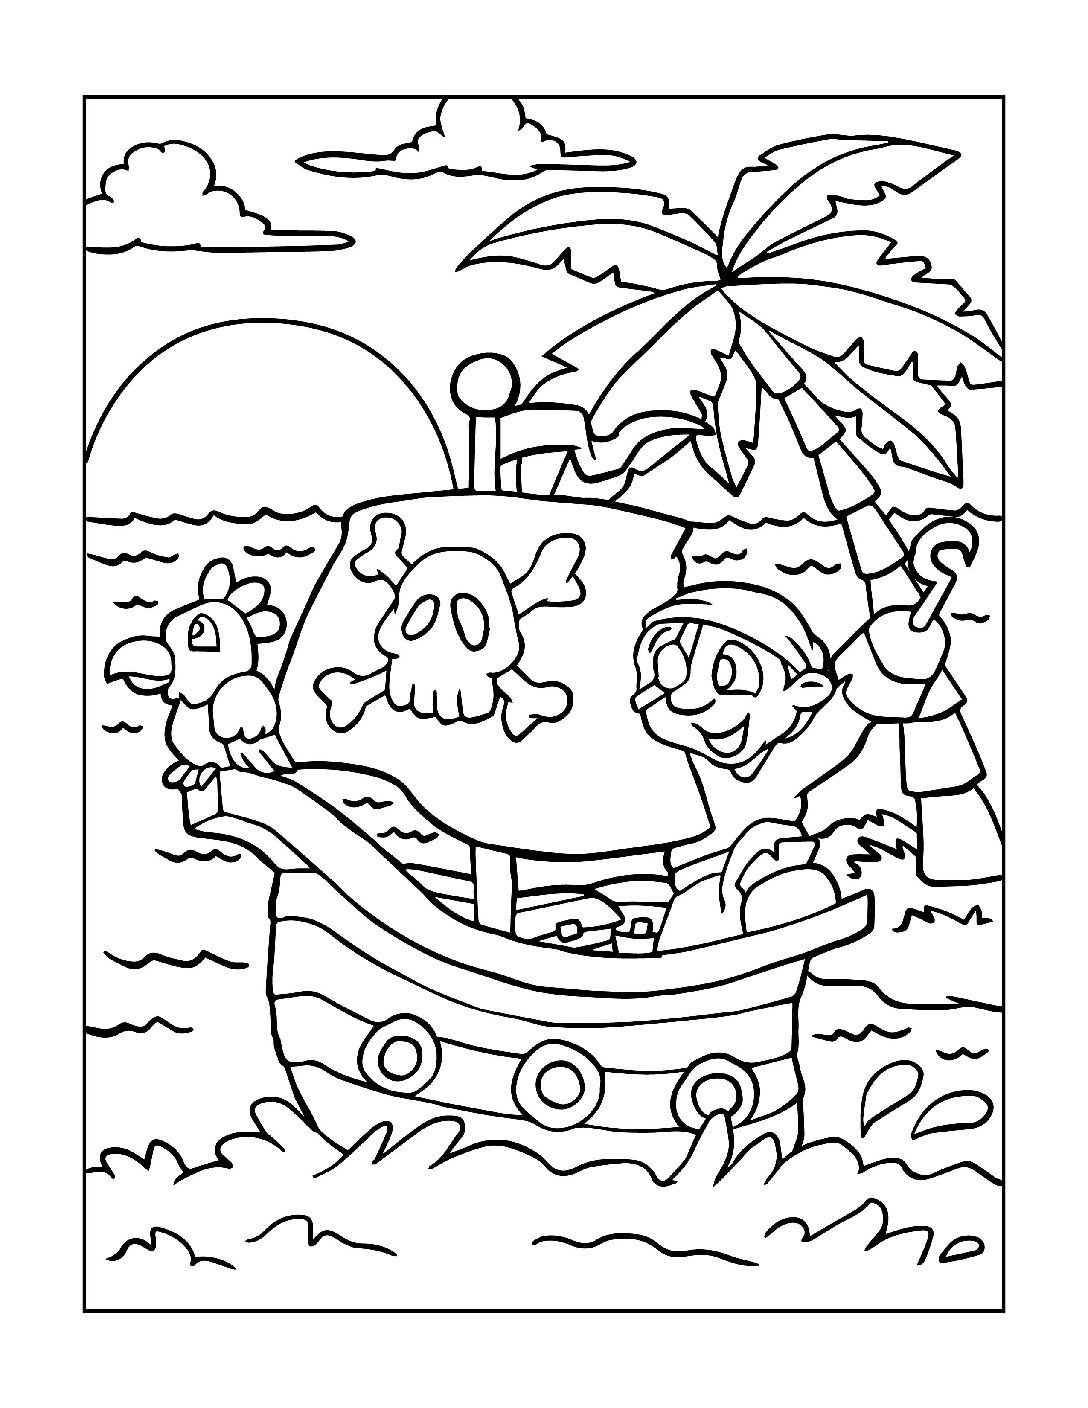 Coloring-Pages-Pirates-and-Knights-for-Boys-5-01-pdf Free Printable Pirates &  Knights Colouring Pages